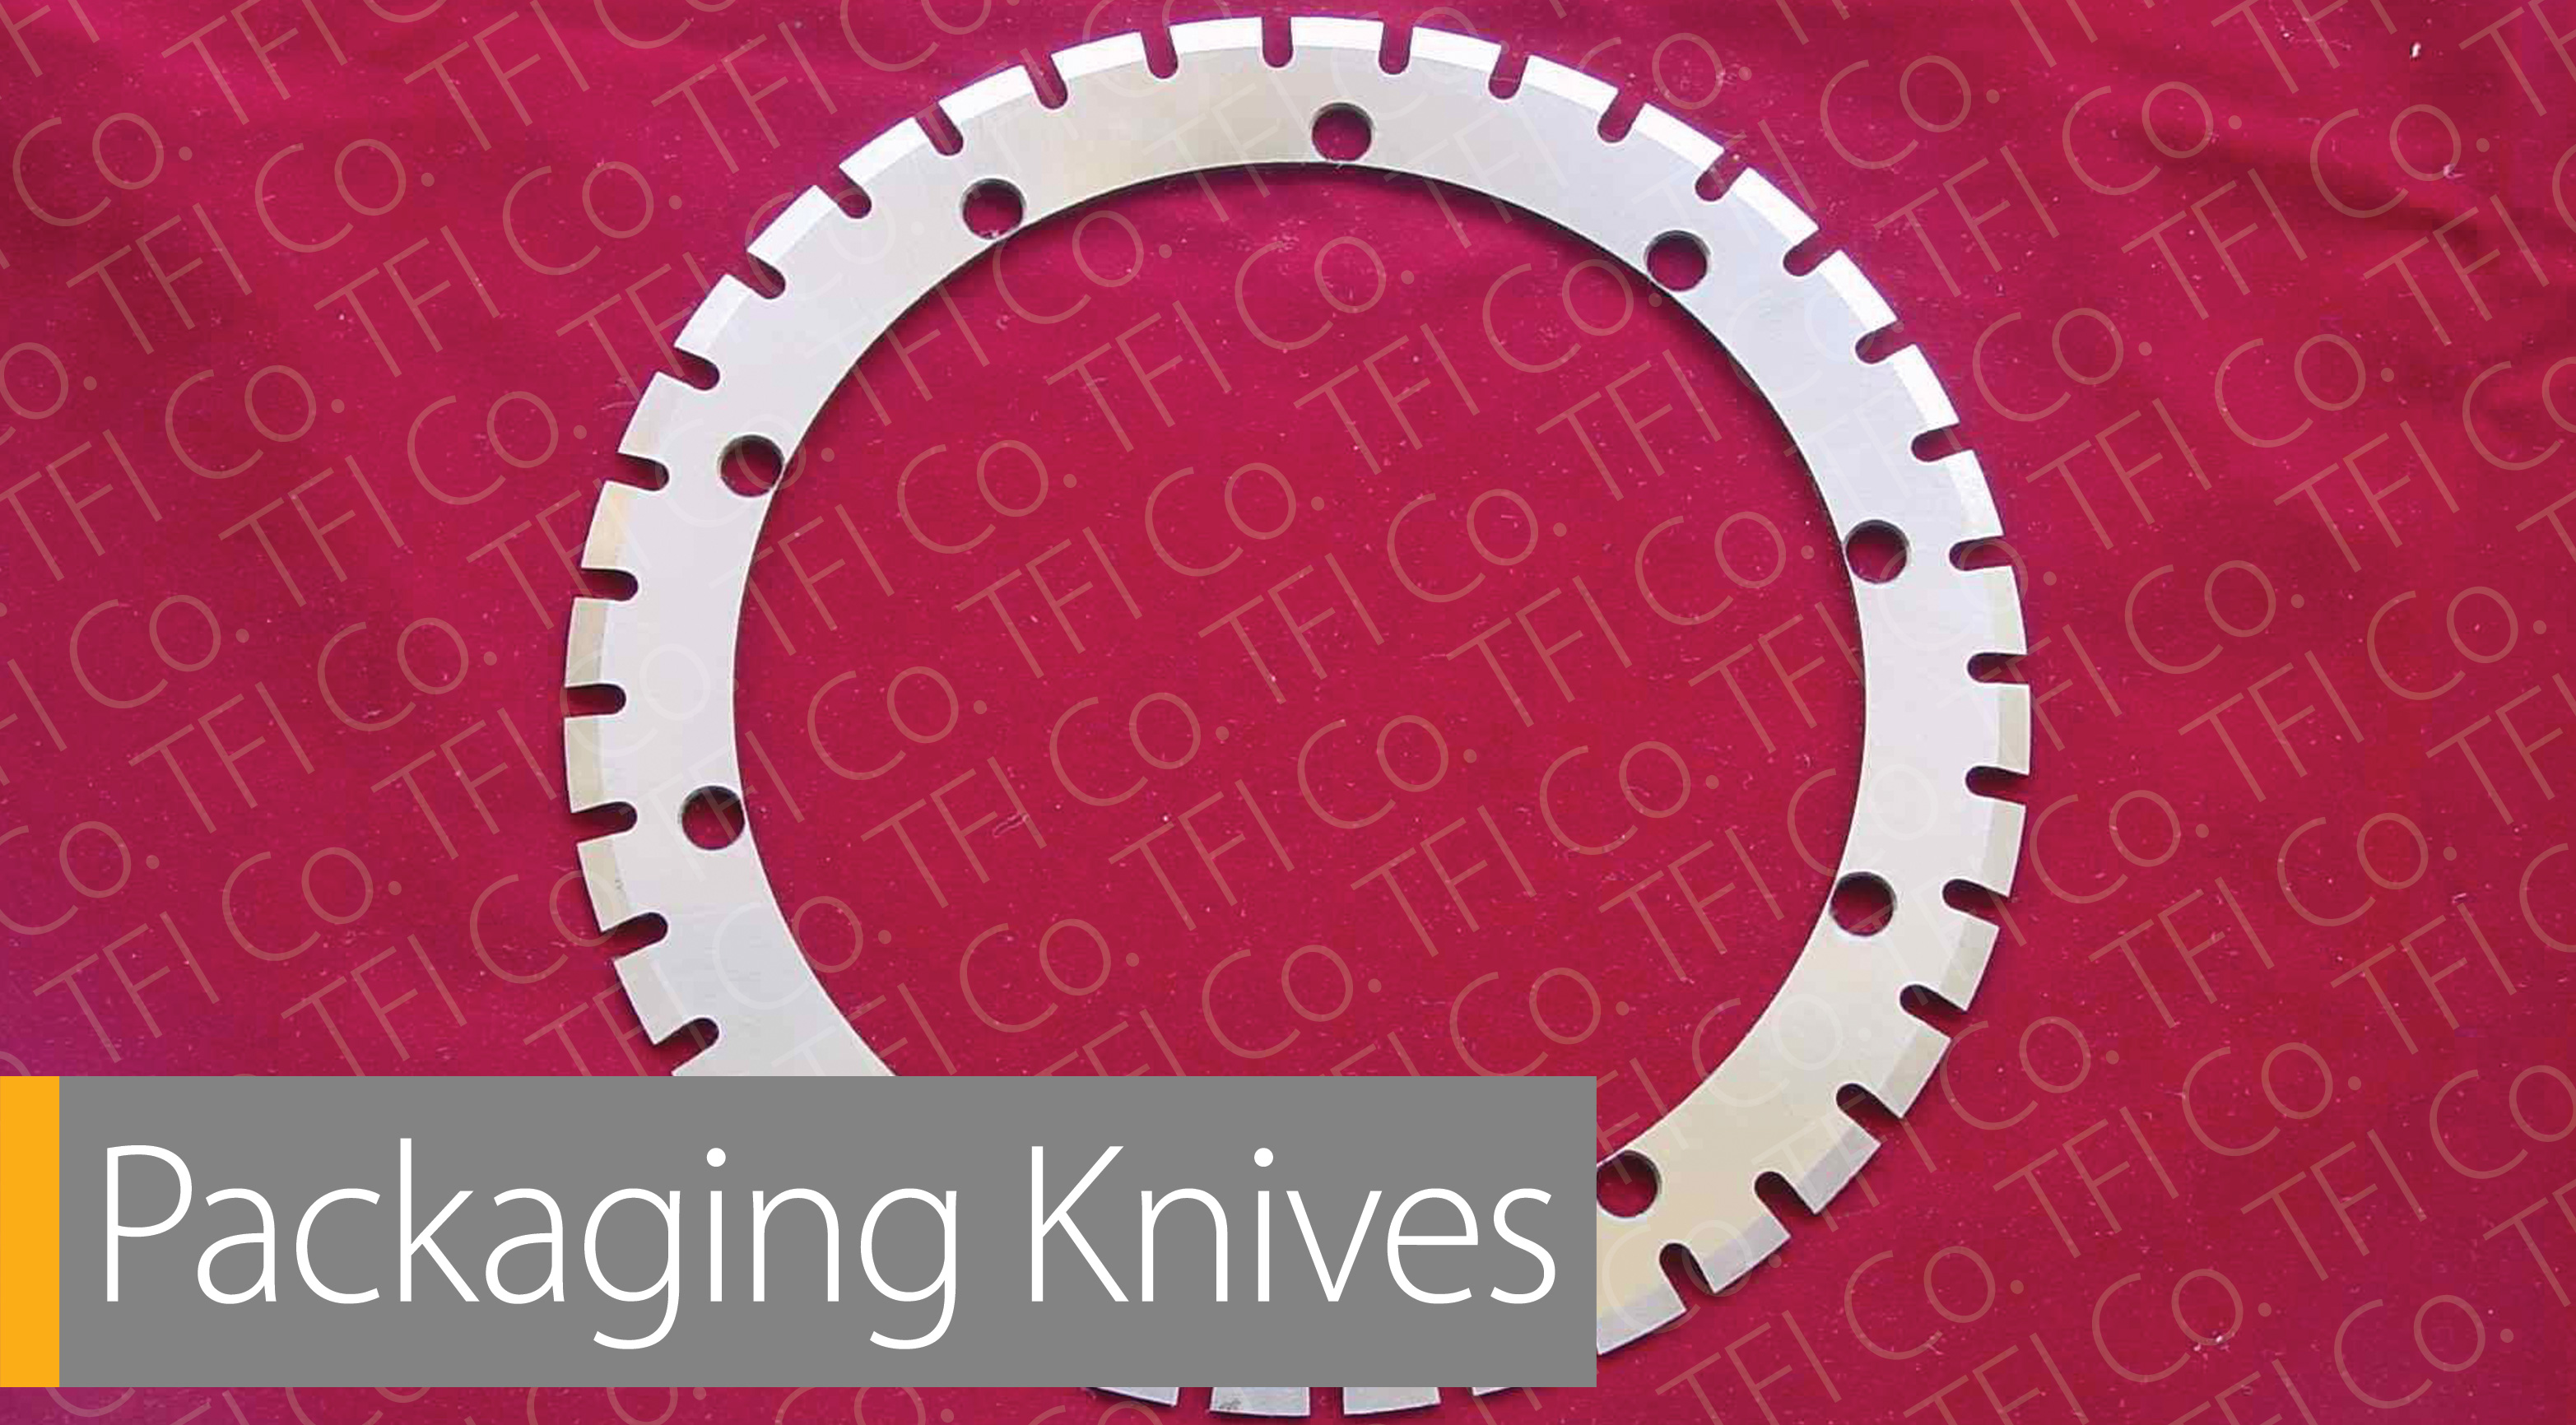 packaging perforation steel blades and machine تيغه هاي فولادي  برش تيز برنده پایا ابزار سازان  knives tfico , uae dubai ksa and gcc countries belarus and russia georgia as well packaging industry